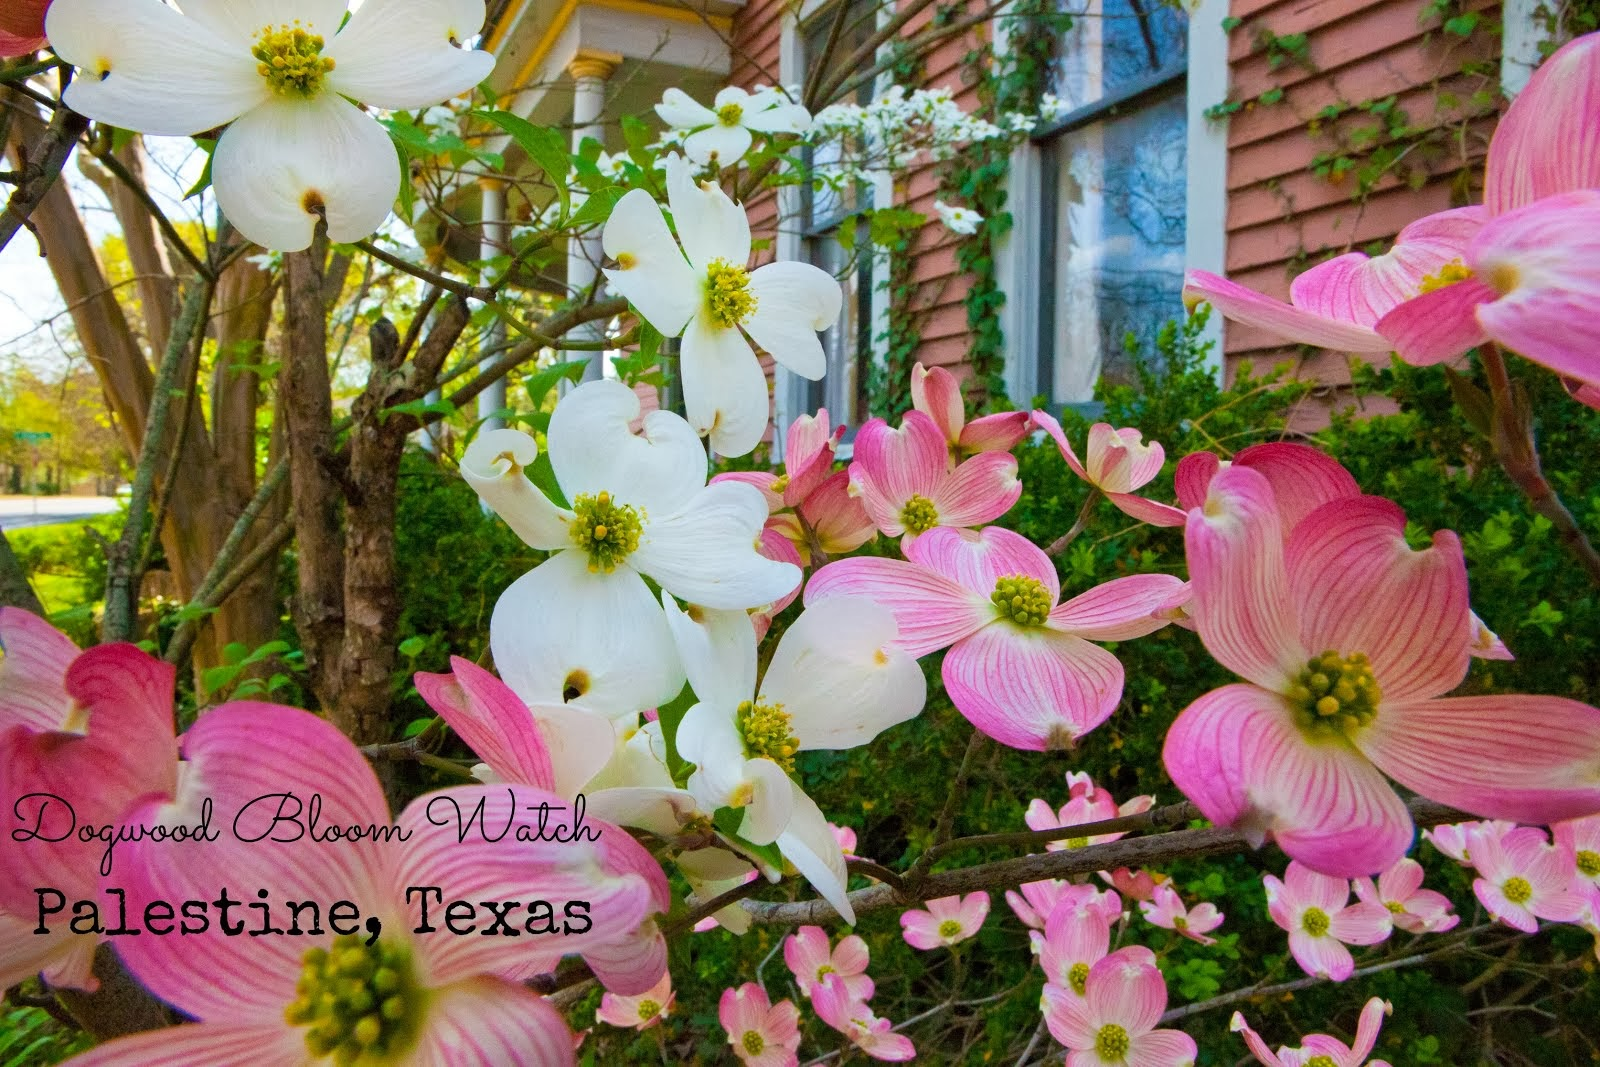 Dogwood Bloom Watch